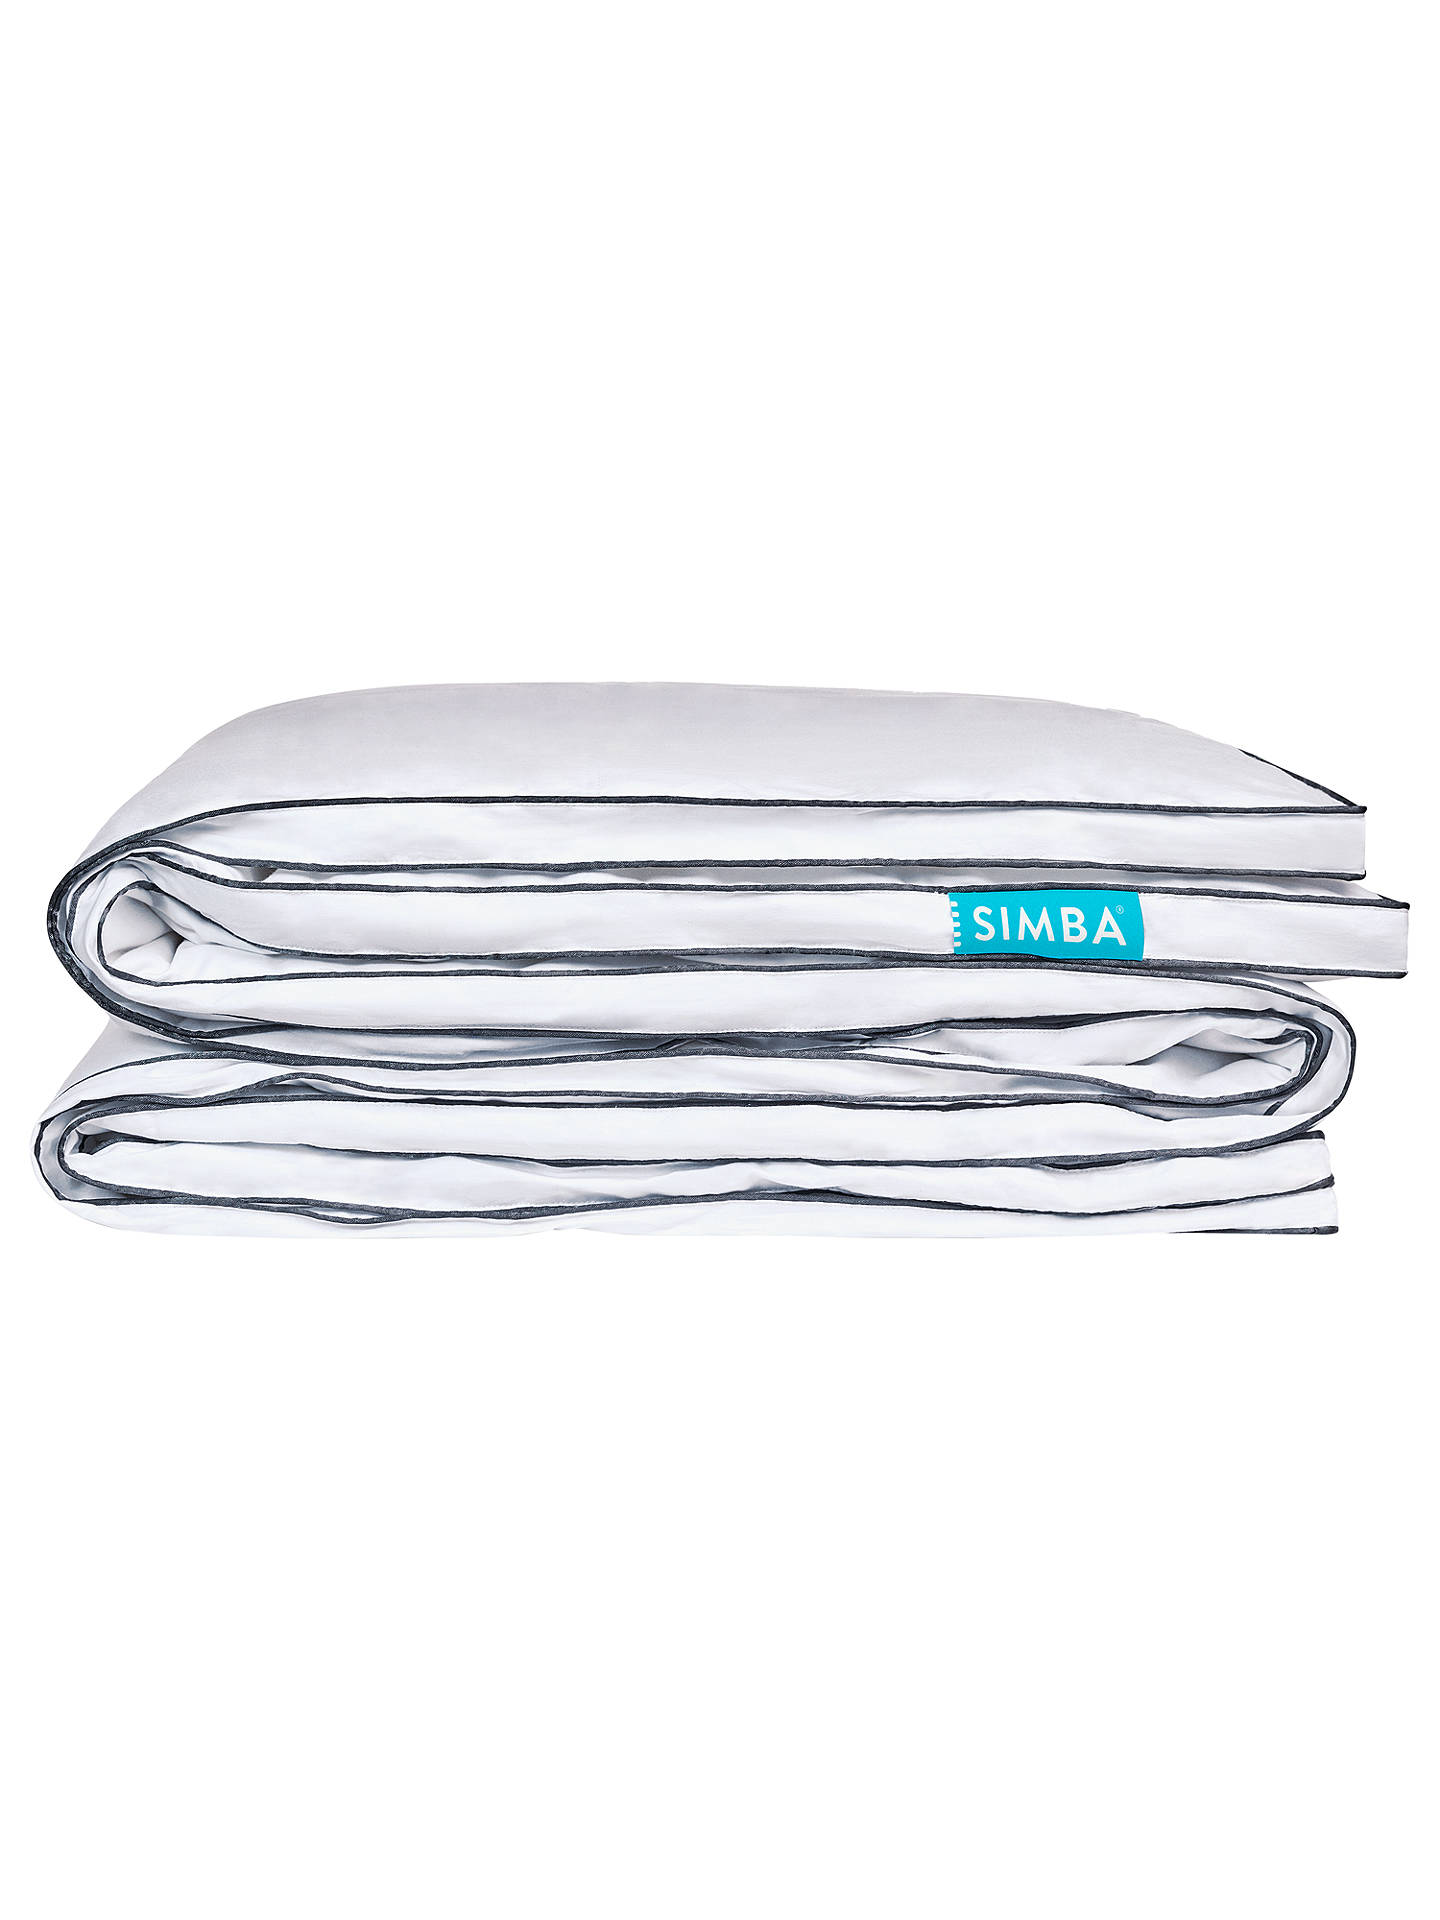 BuySIMBA Microfibre Duvet, 10.5 Tog, Single Online at johnlewis.com